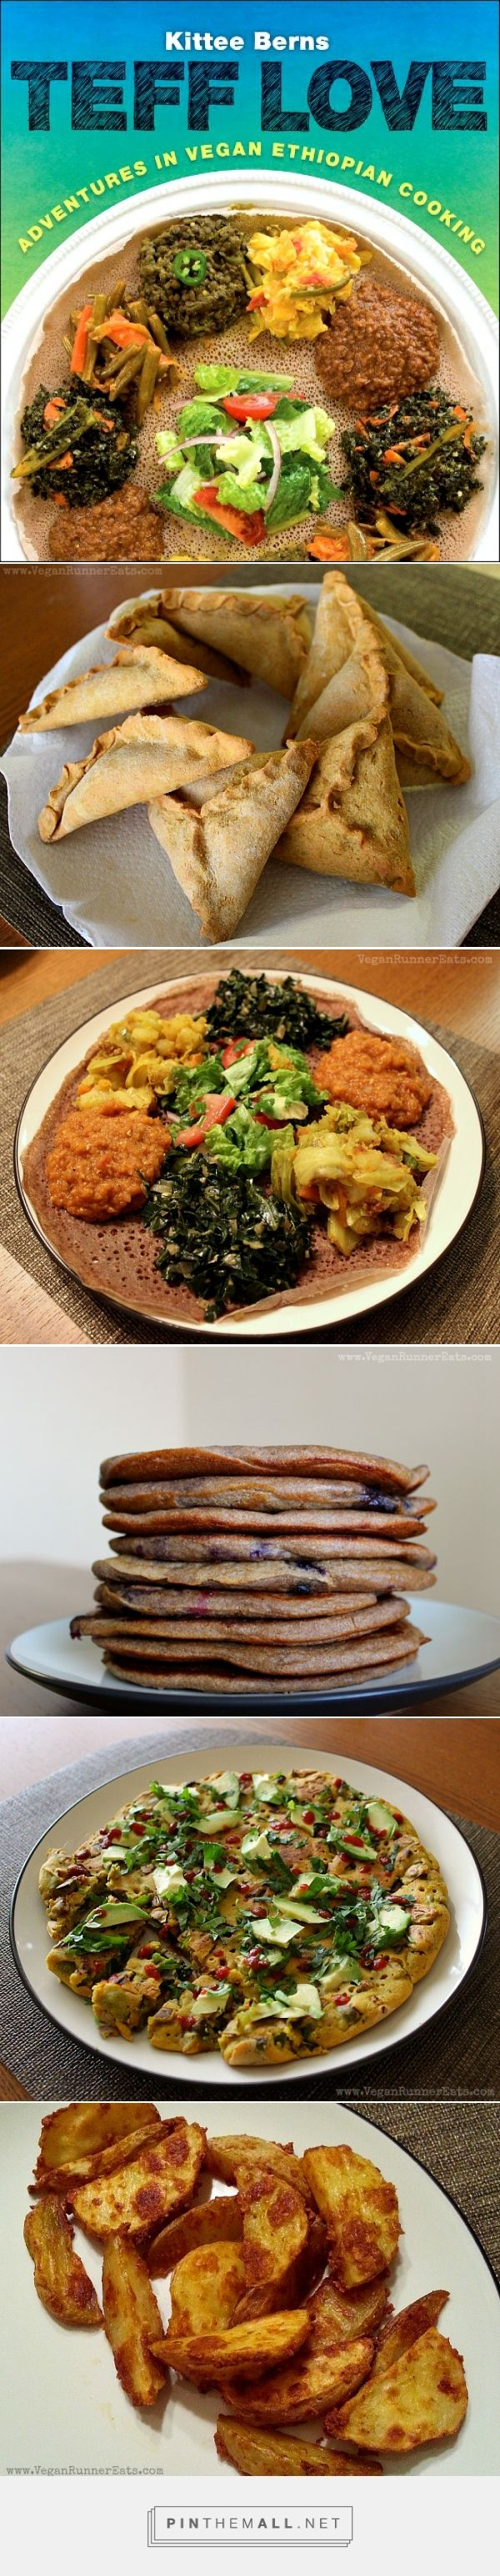 Vegan Ethiopian deliciousness from Teff Love by Kittee Berns! A full review, interview with the author, and a simple vegetable side dish recipe to please anyone!